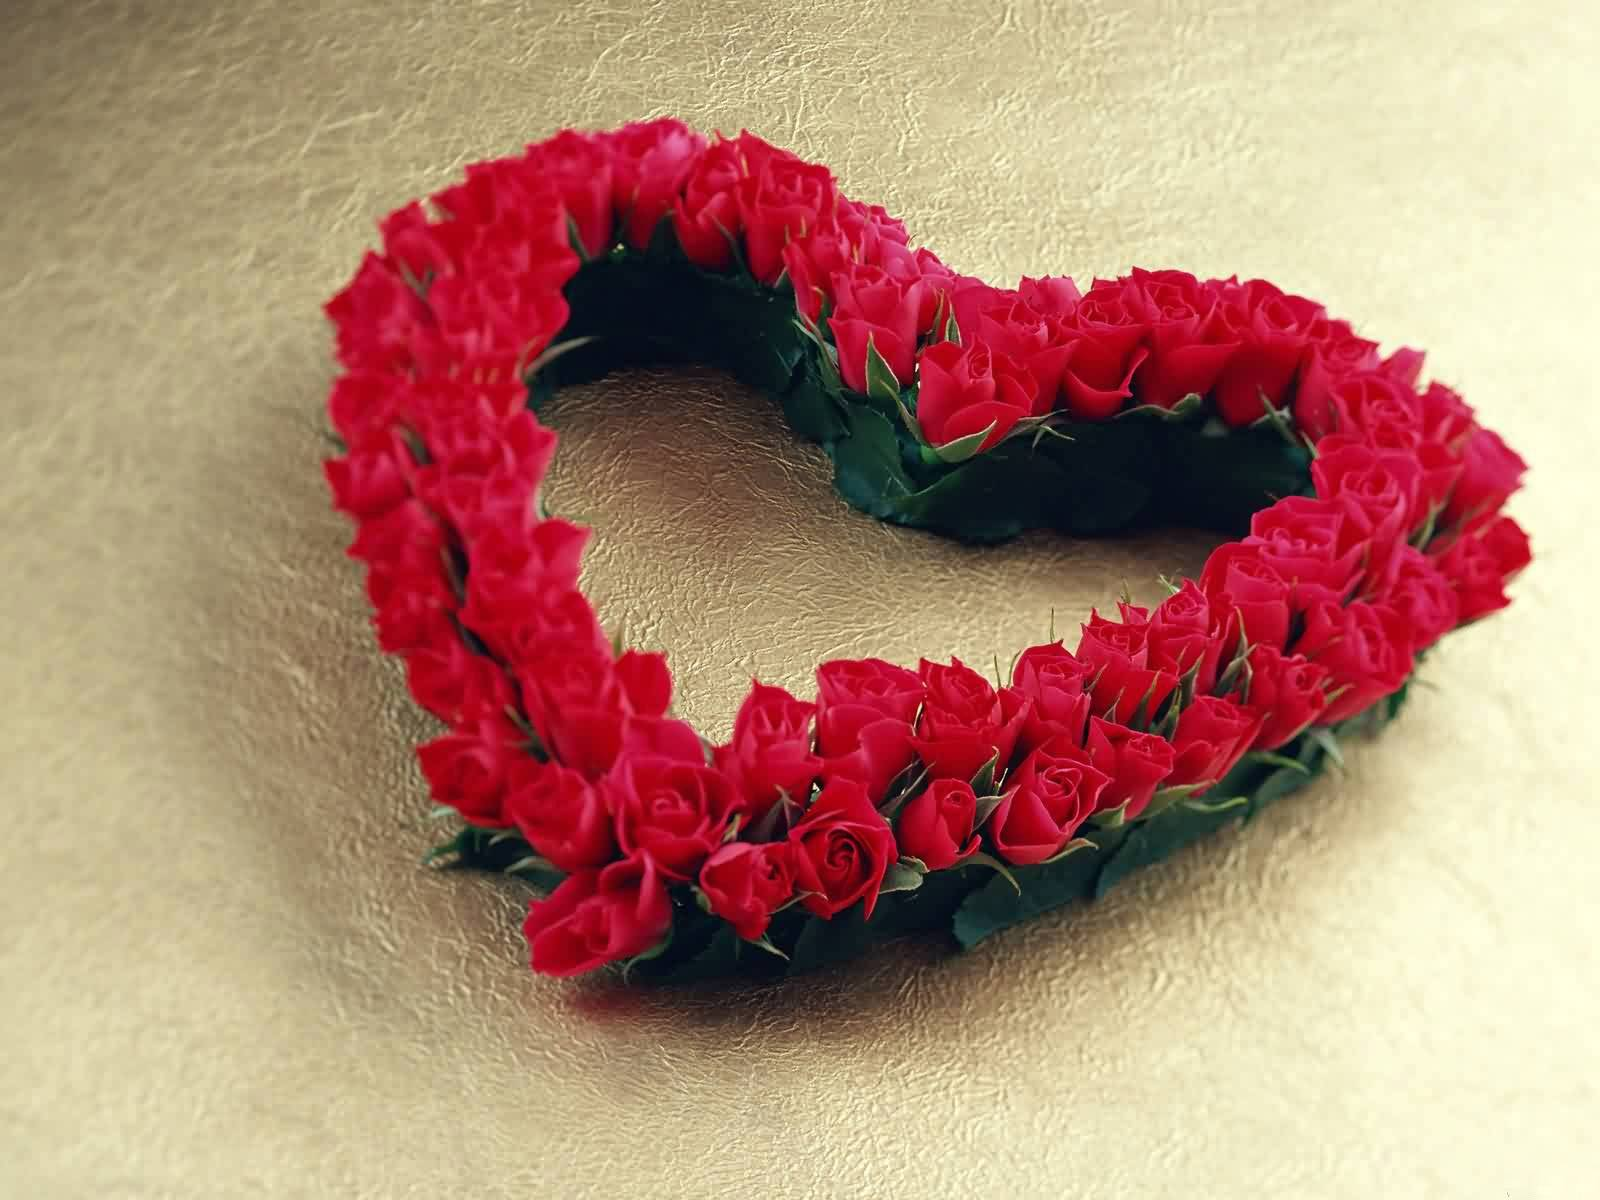 heart_shaped_red_rose